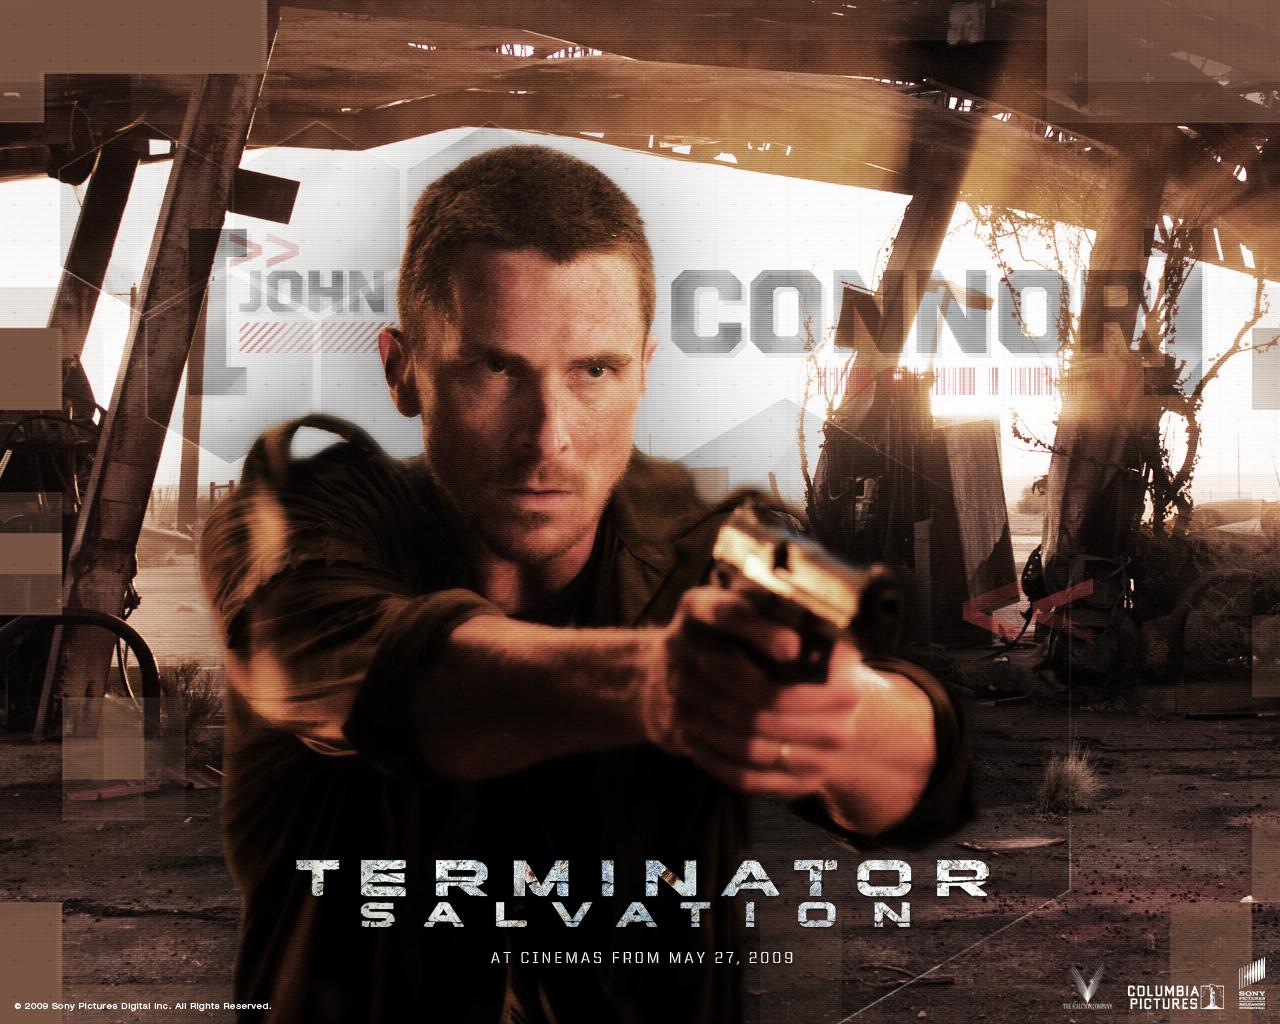 Wallpaper Terminator Renaissance Cinema Video